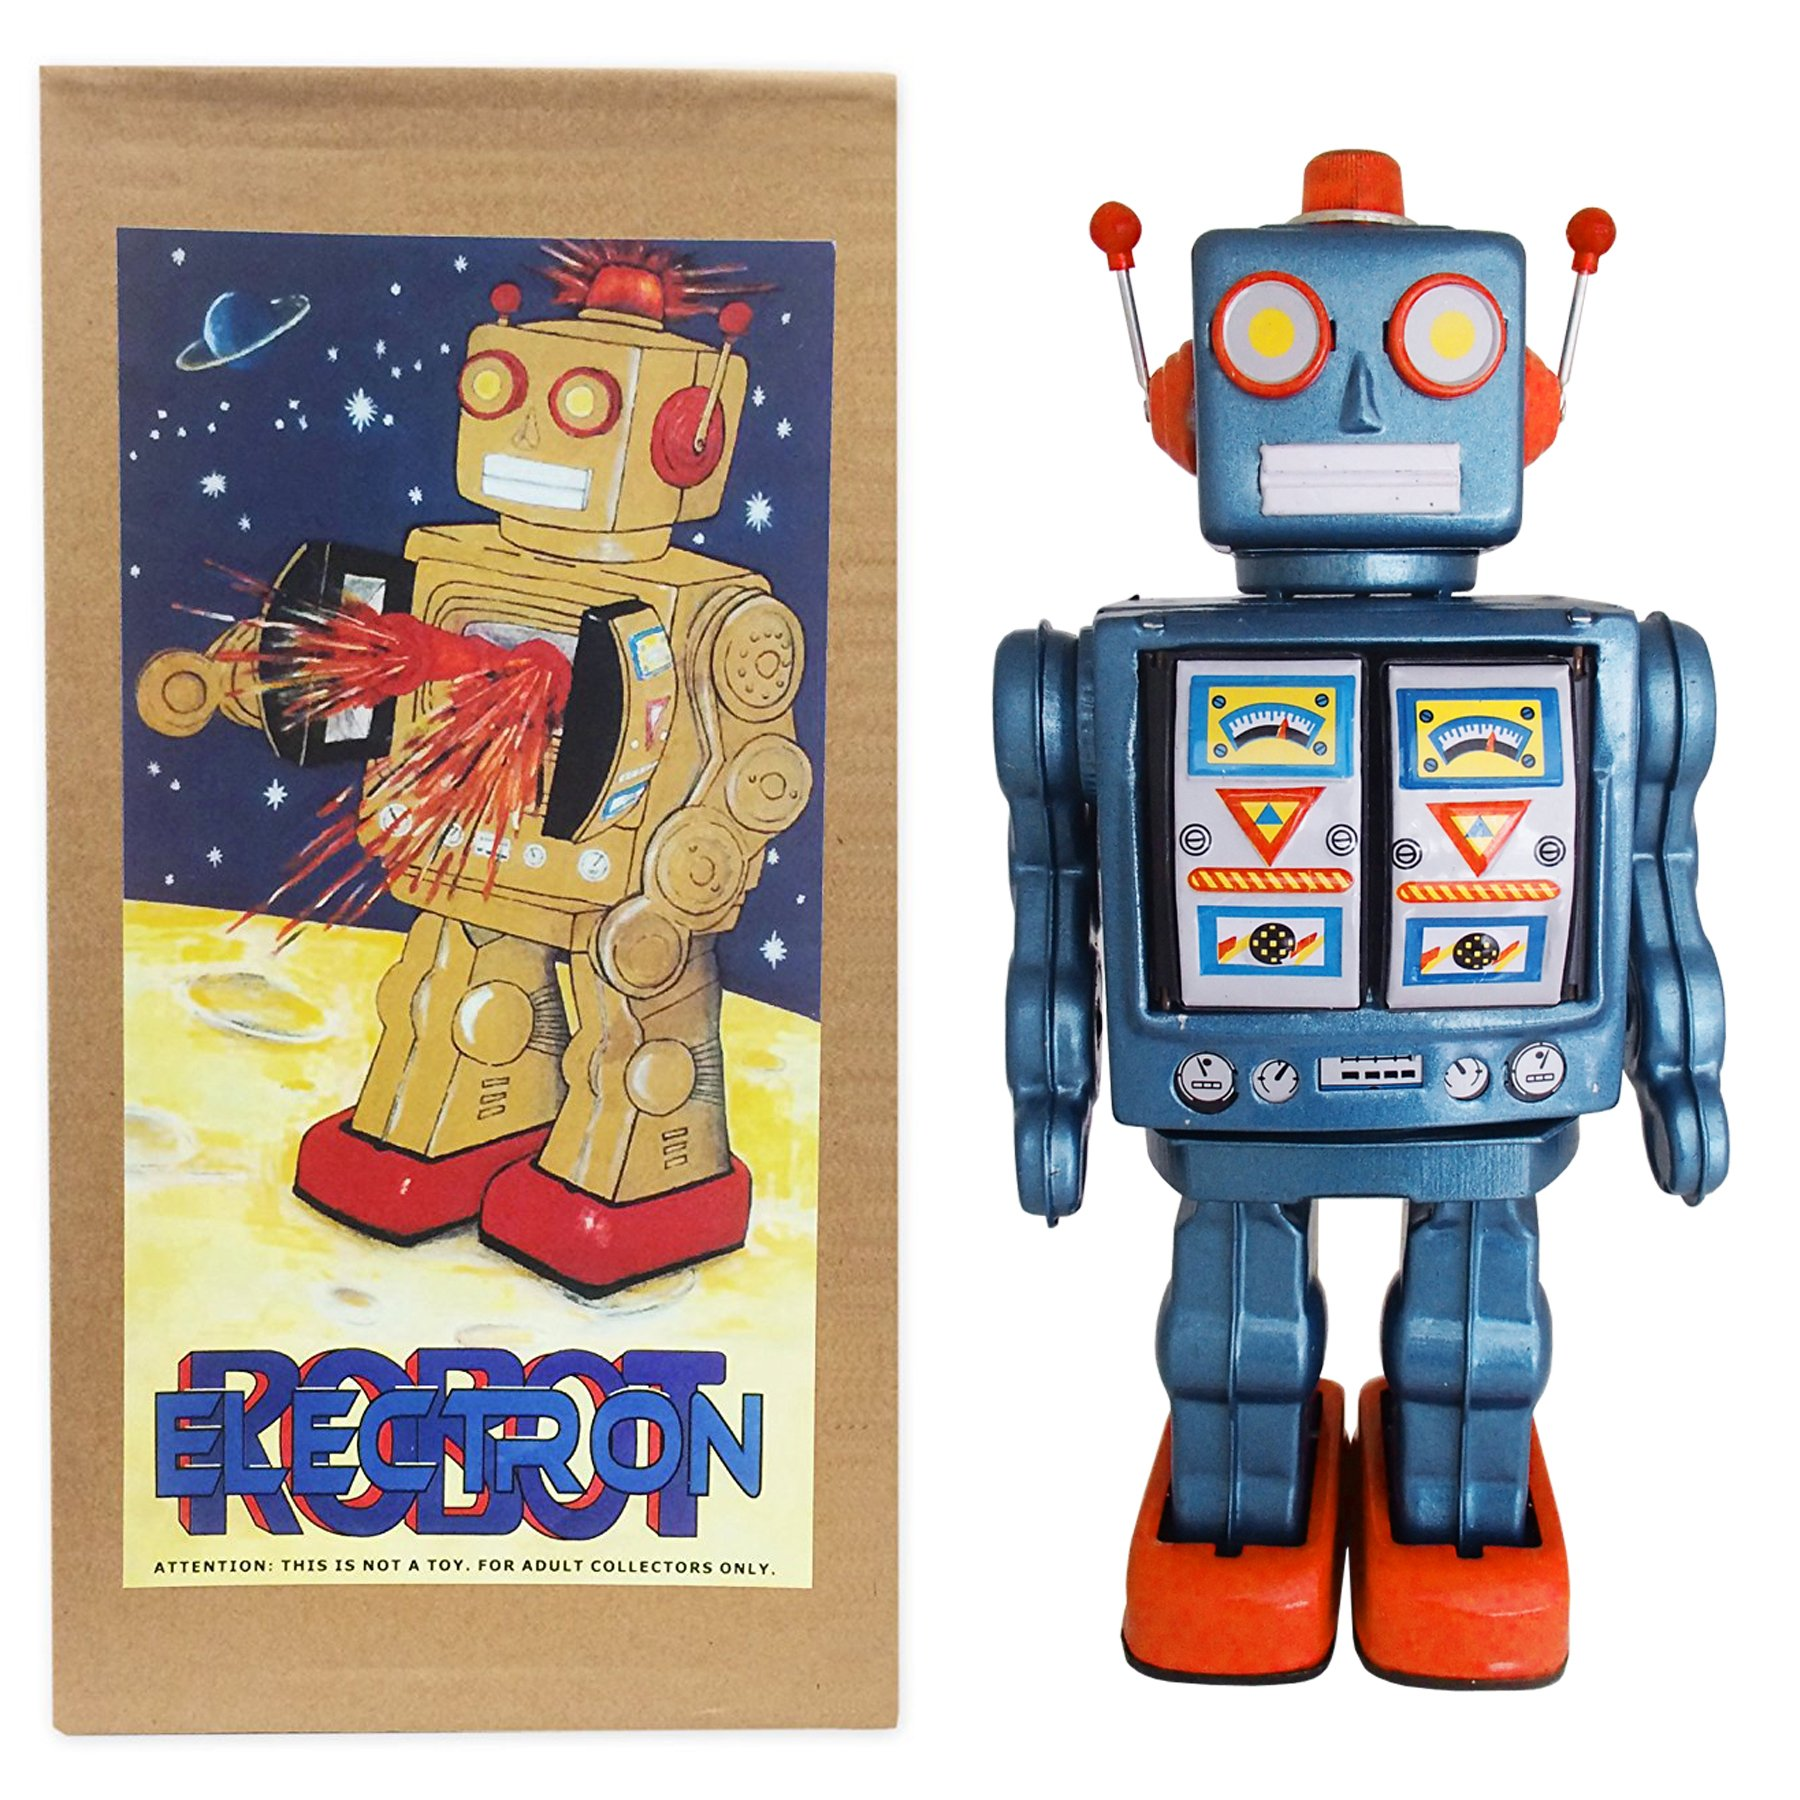 Mr. D Cell Shiny Blue and Red Vintage Style Collectible Electron Robot with Gold Chest